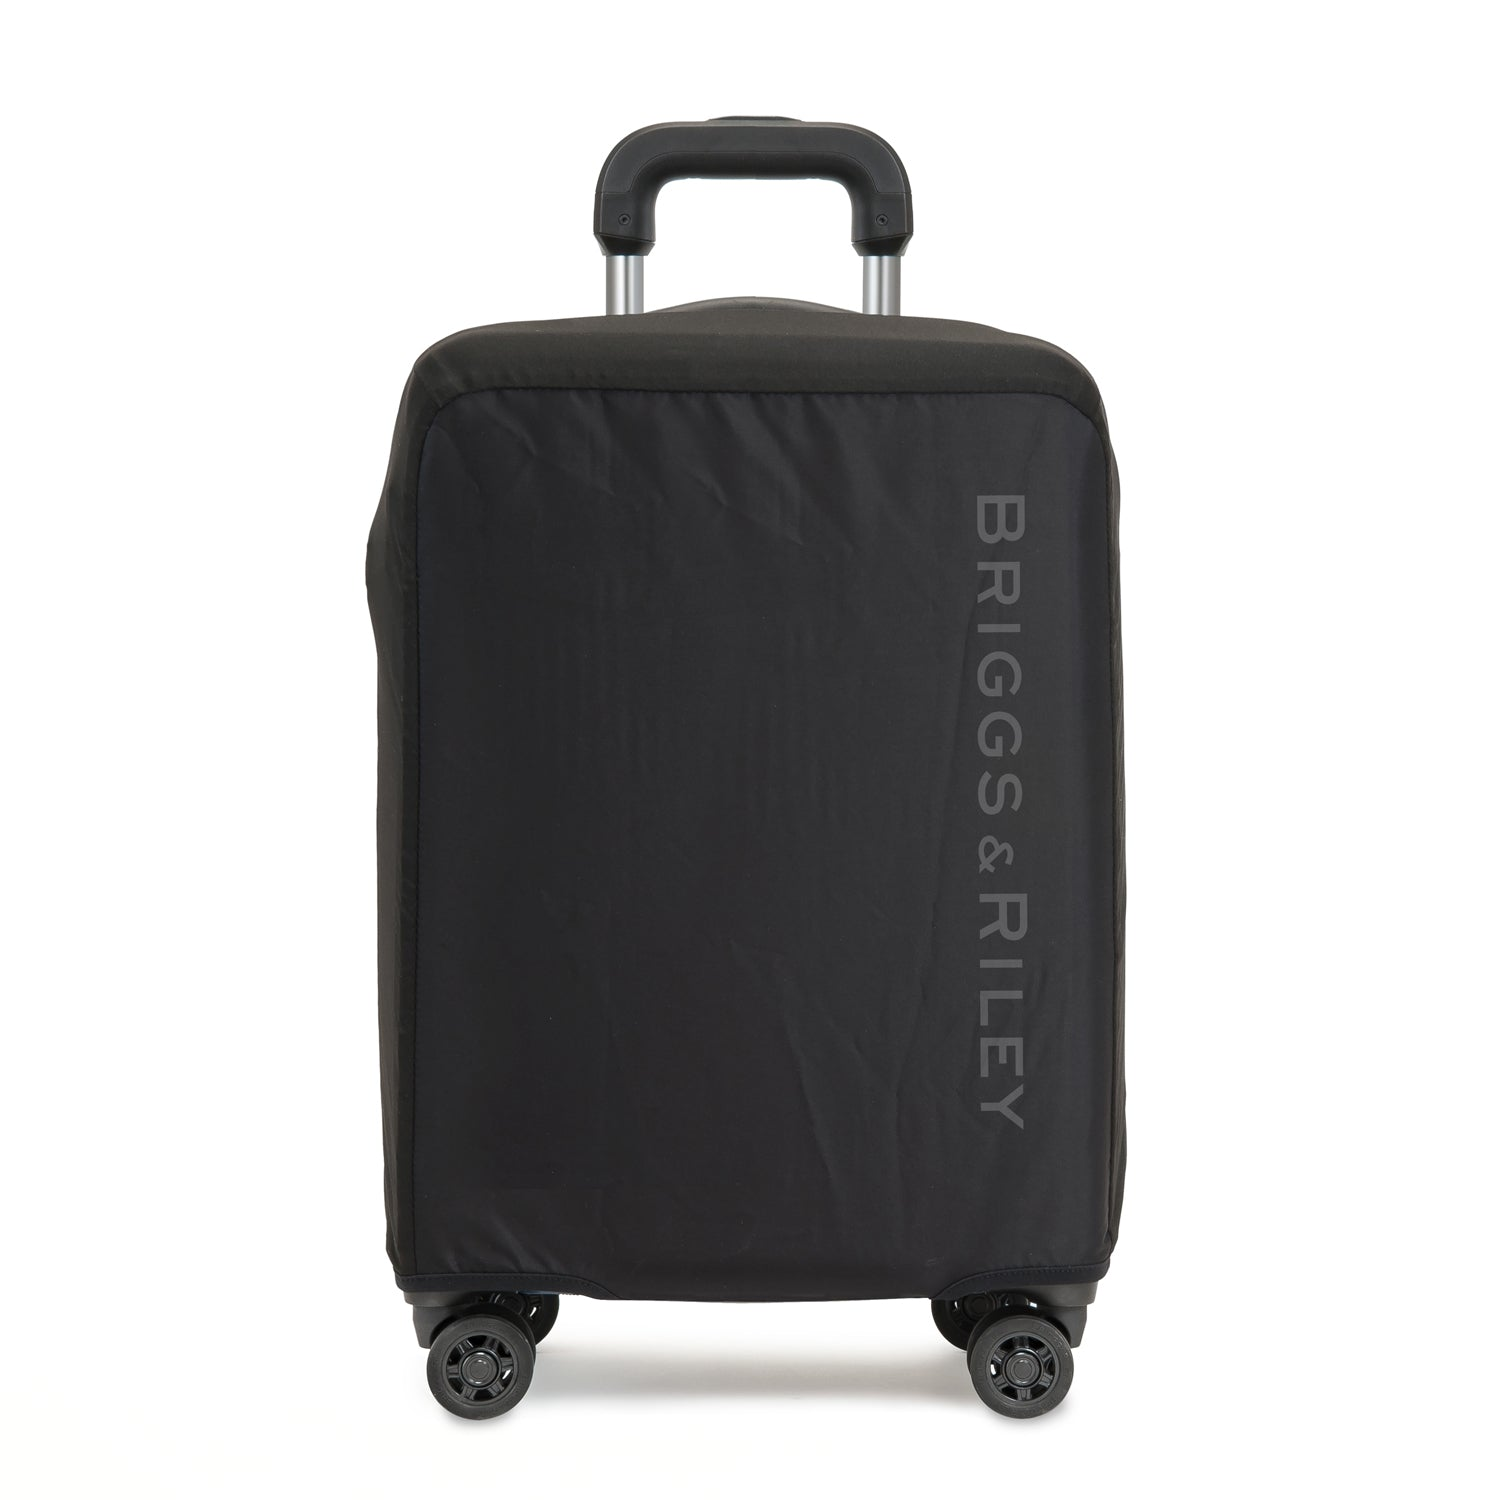 Carry-On Luggage Bag Cover